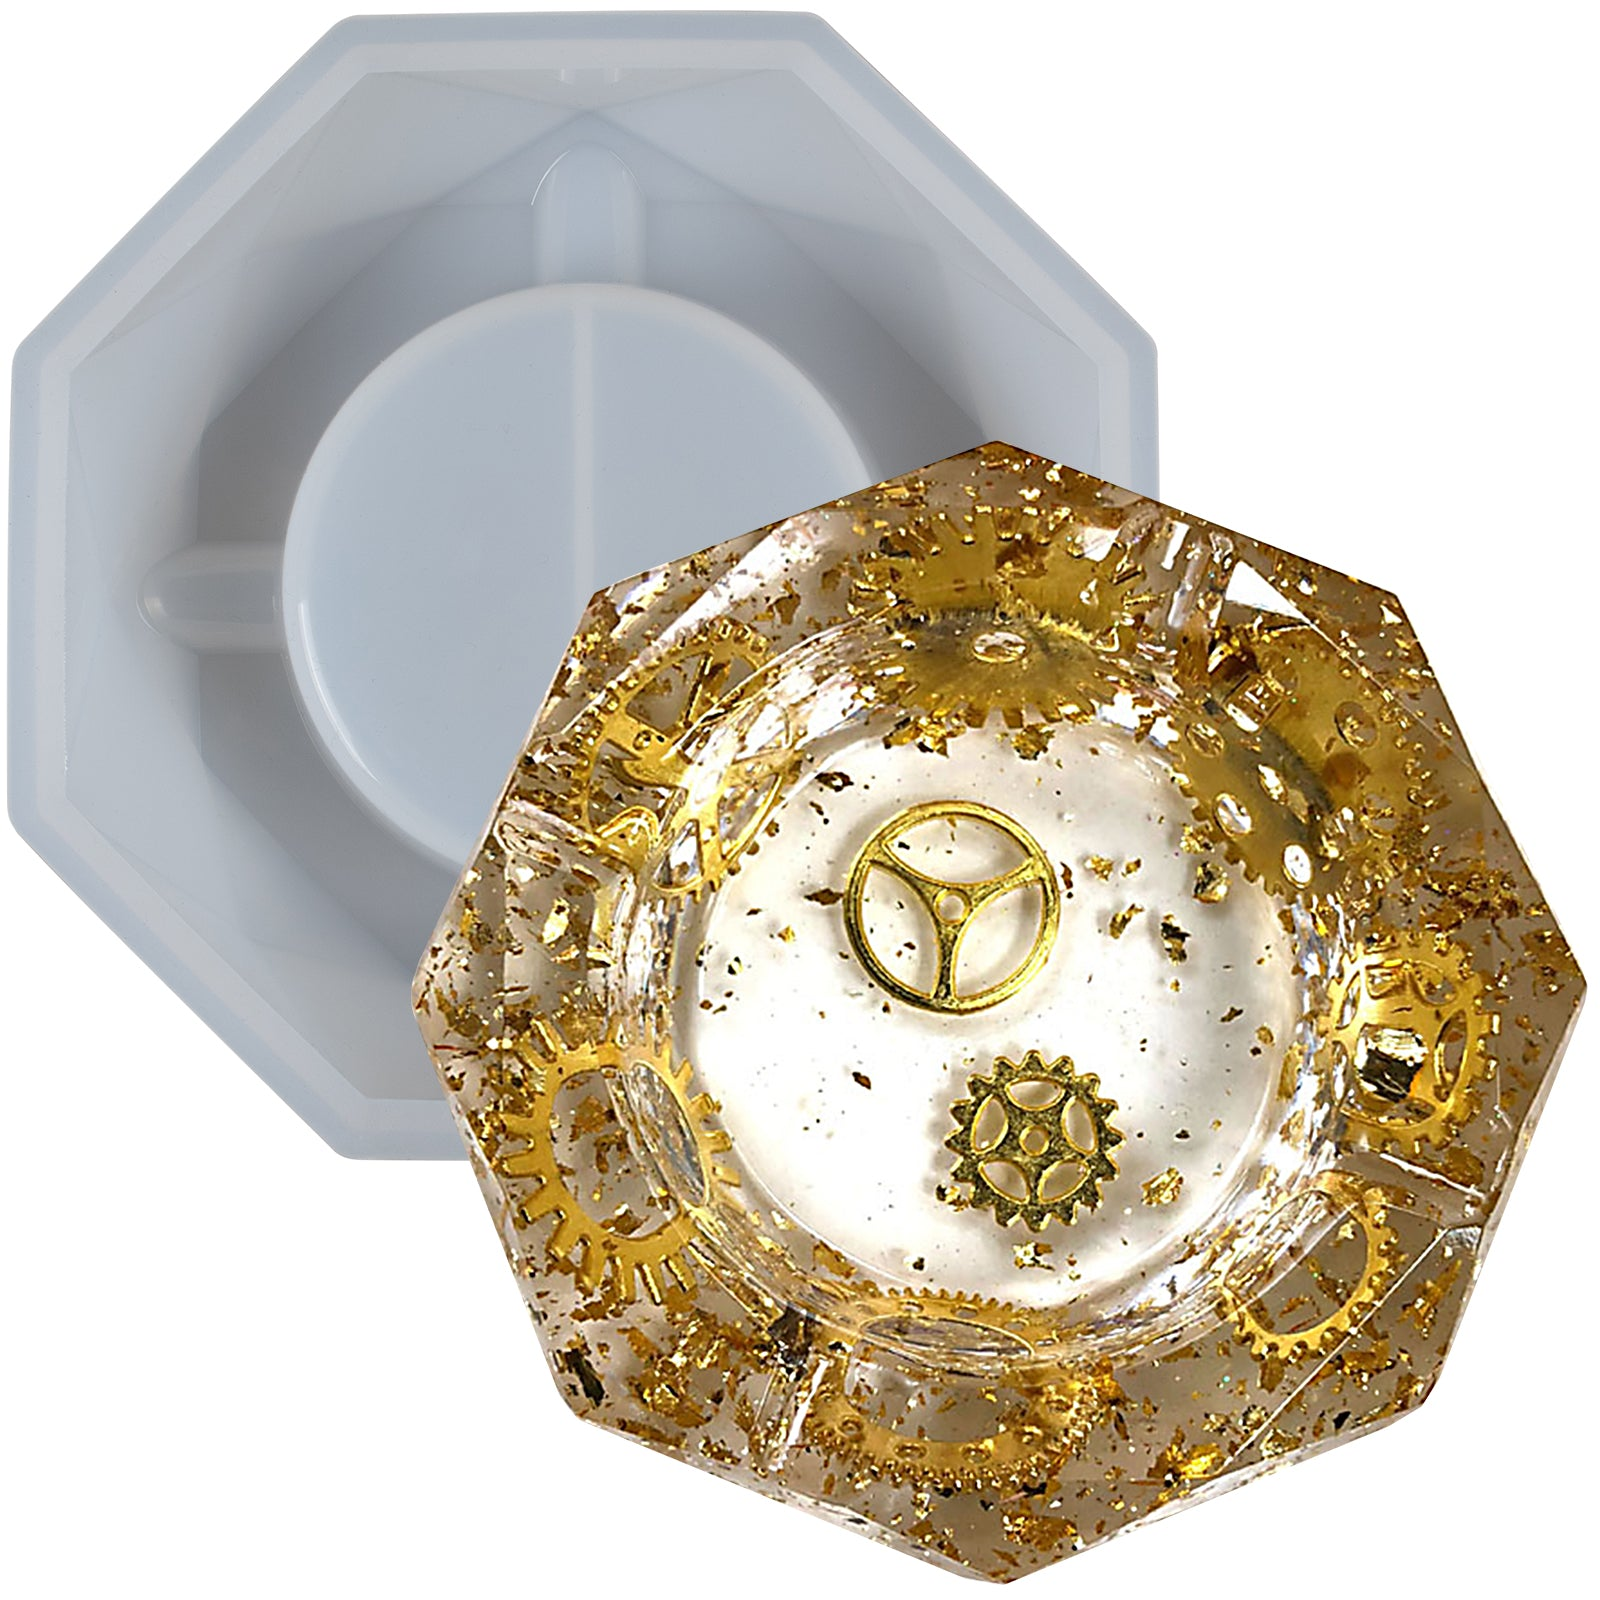 Ashtray Resin Silicone Mold 6.3inch Octagon